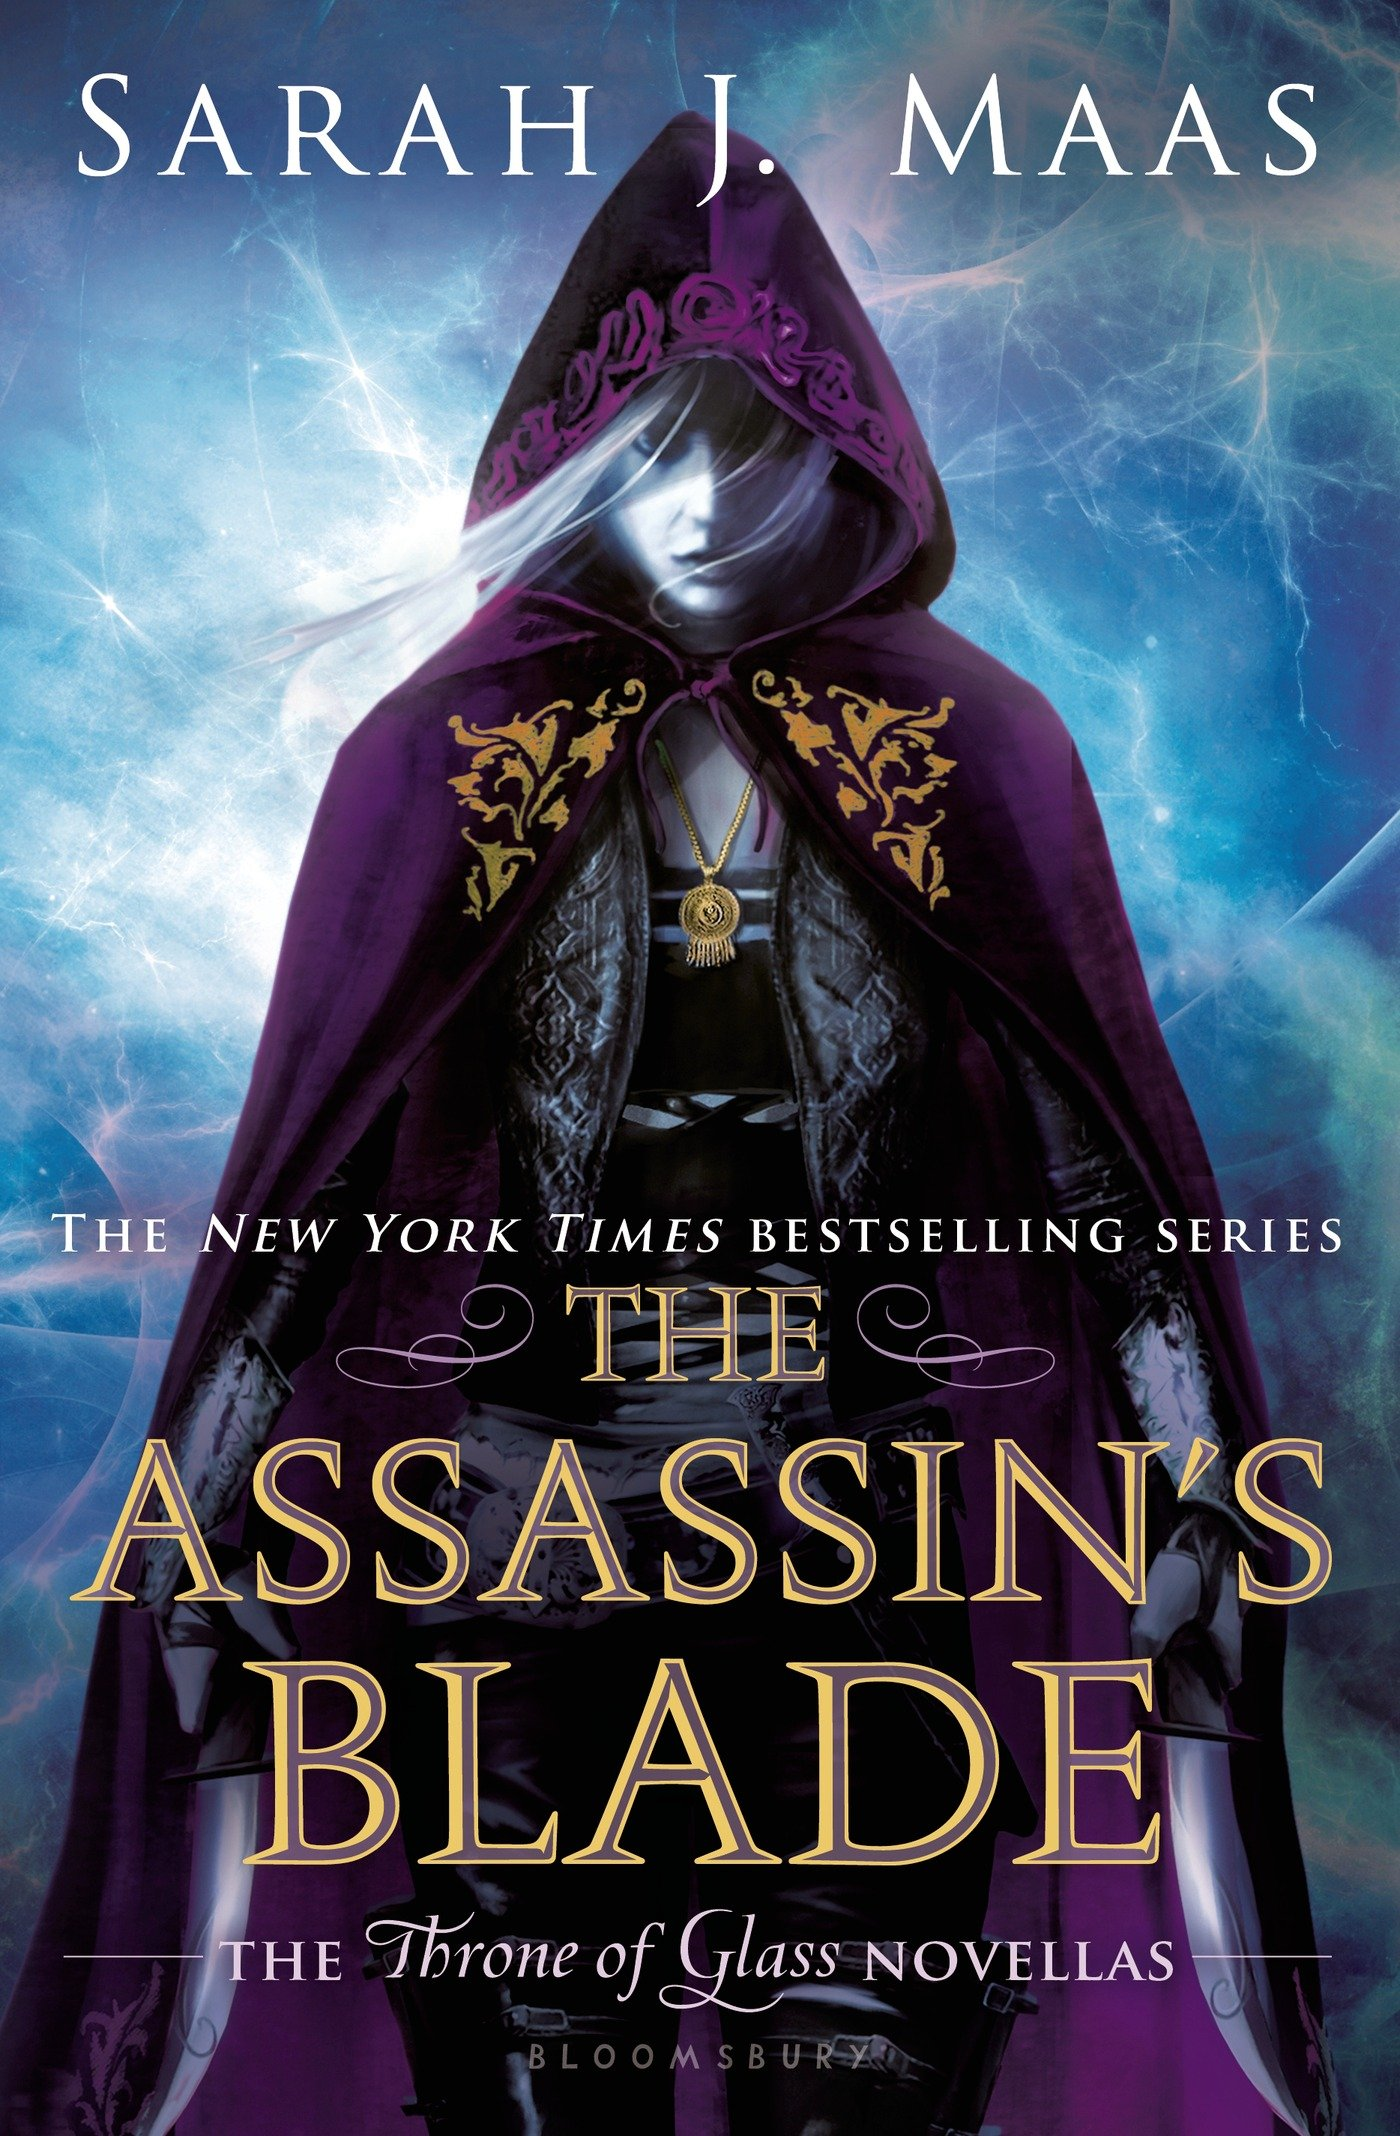 The Assassin's Blade (Throne of Glass #0.1-#0.5) by Sarah J. Maas